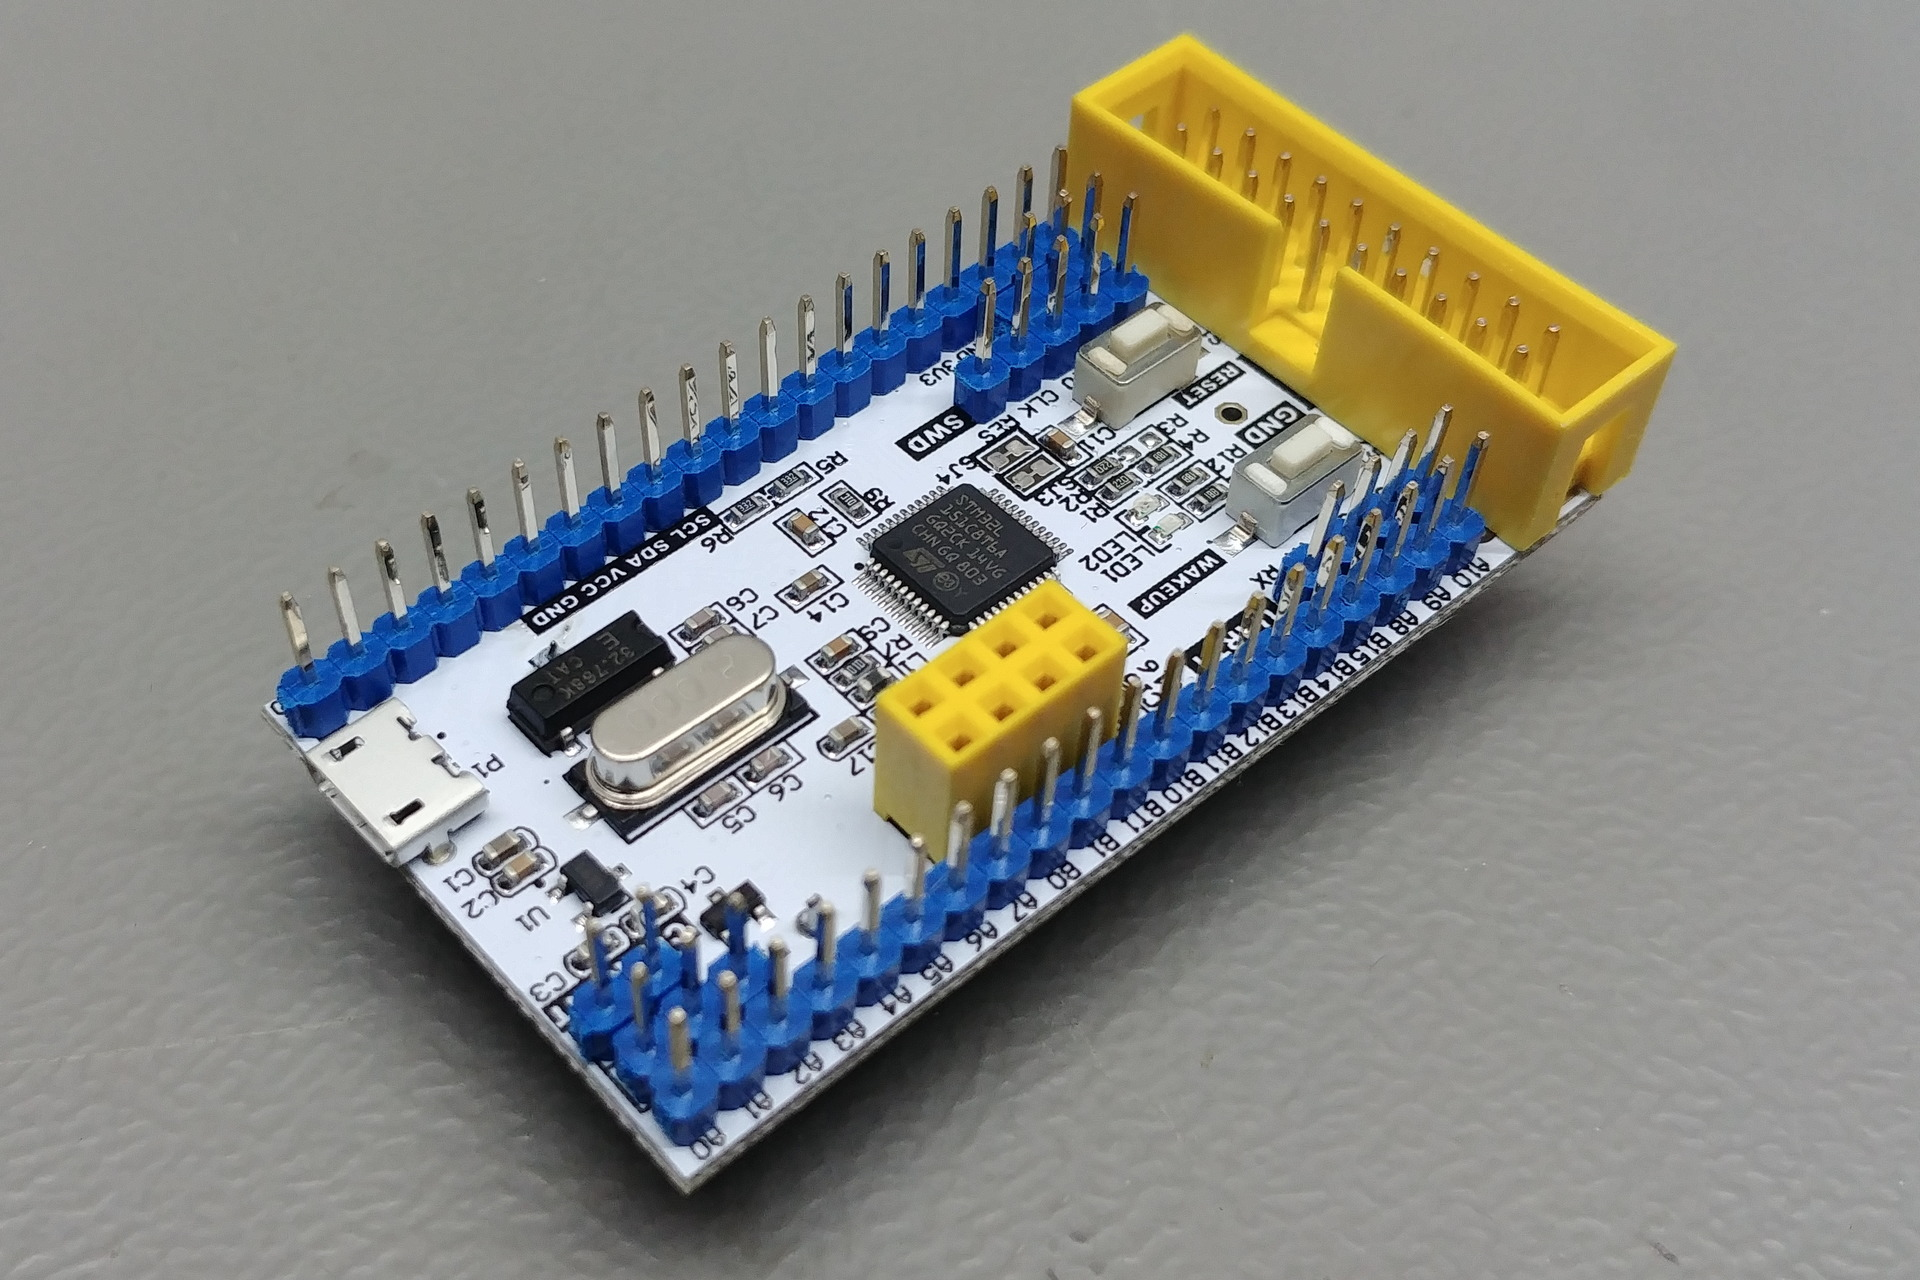 STM32xxxC8T6 Board: Perspective view